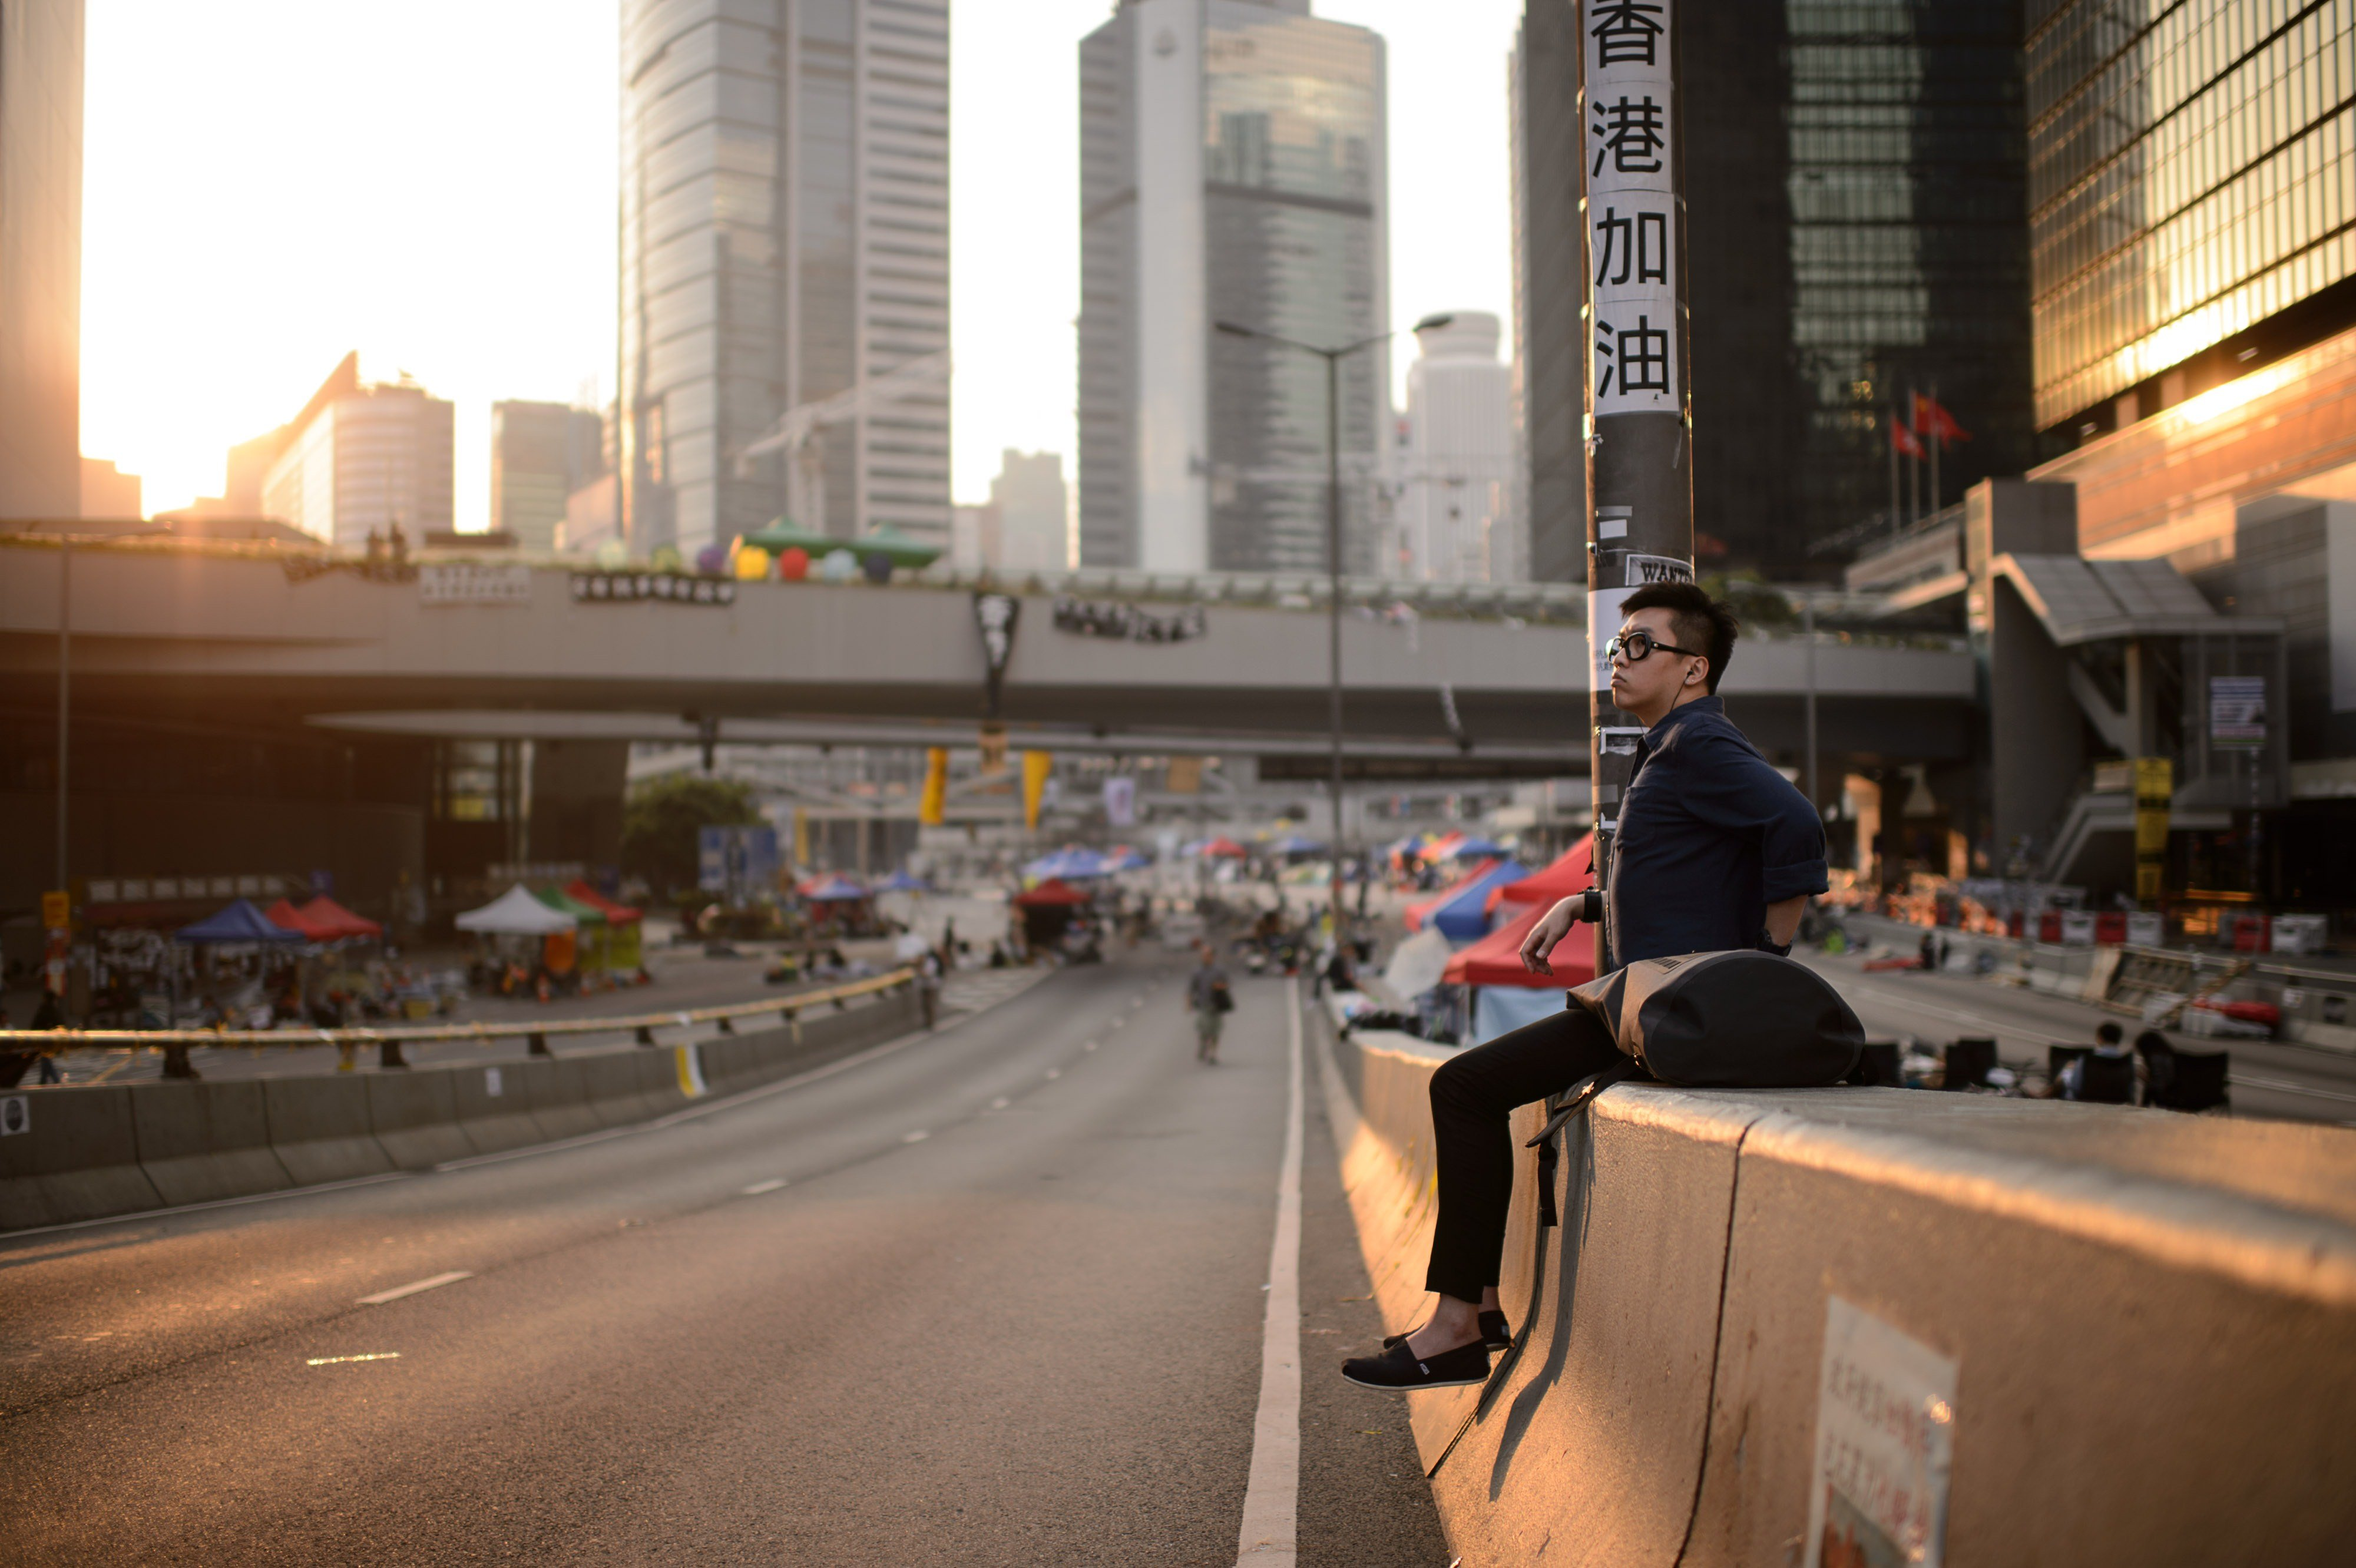 A pro-democracy protester watches the sunrise from an empty road in the Admiralty district of Hong Kong early on Oct. 7, 2014.